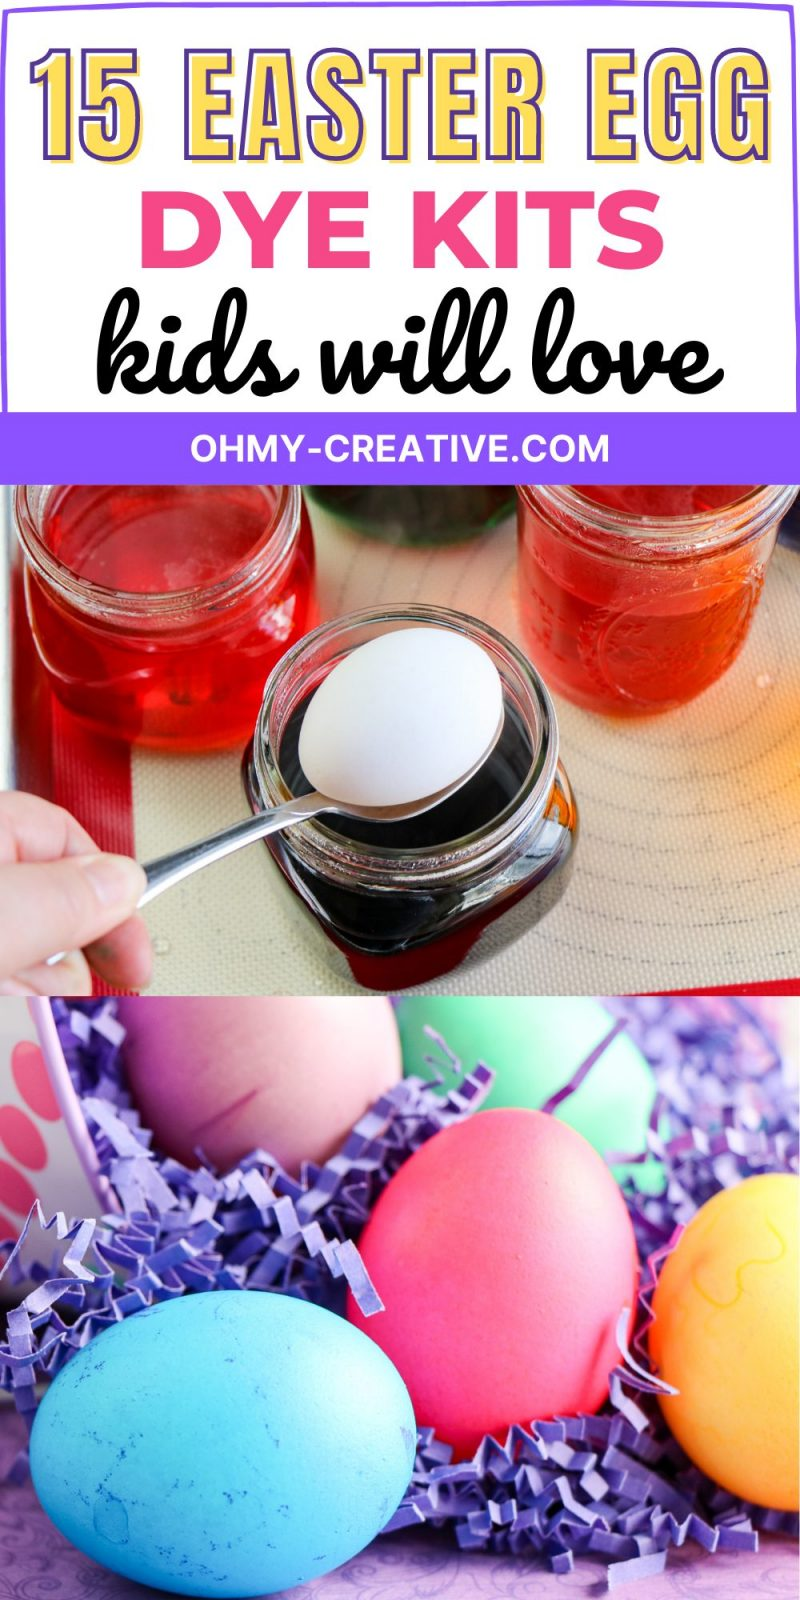 Easter Egg dye kits for kids. An egg is dipped into the liquid egg die and comes out in a bright color.